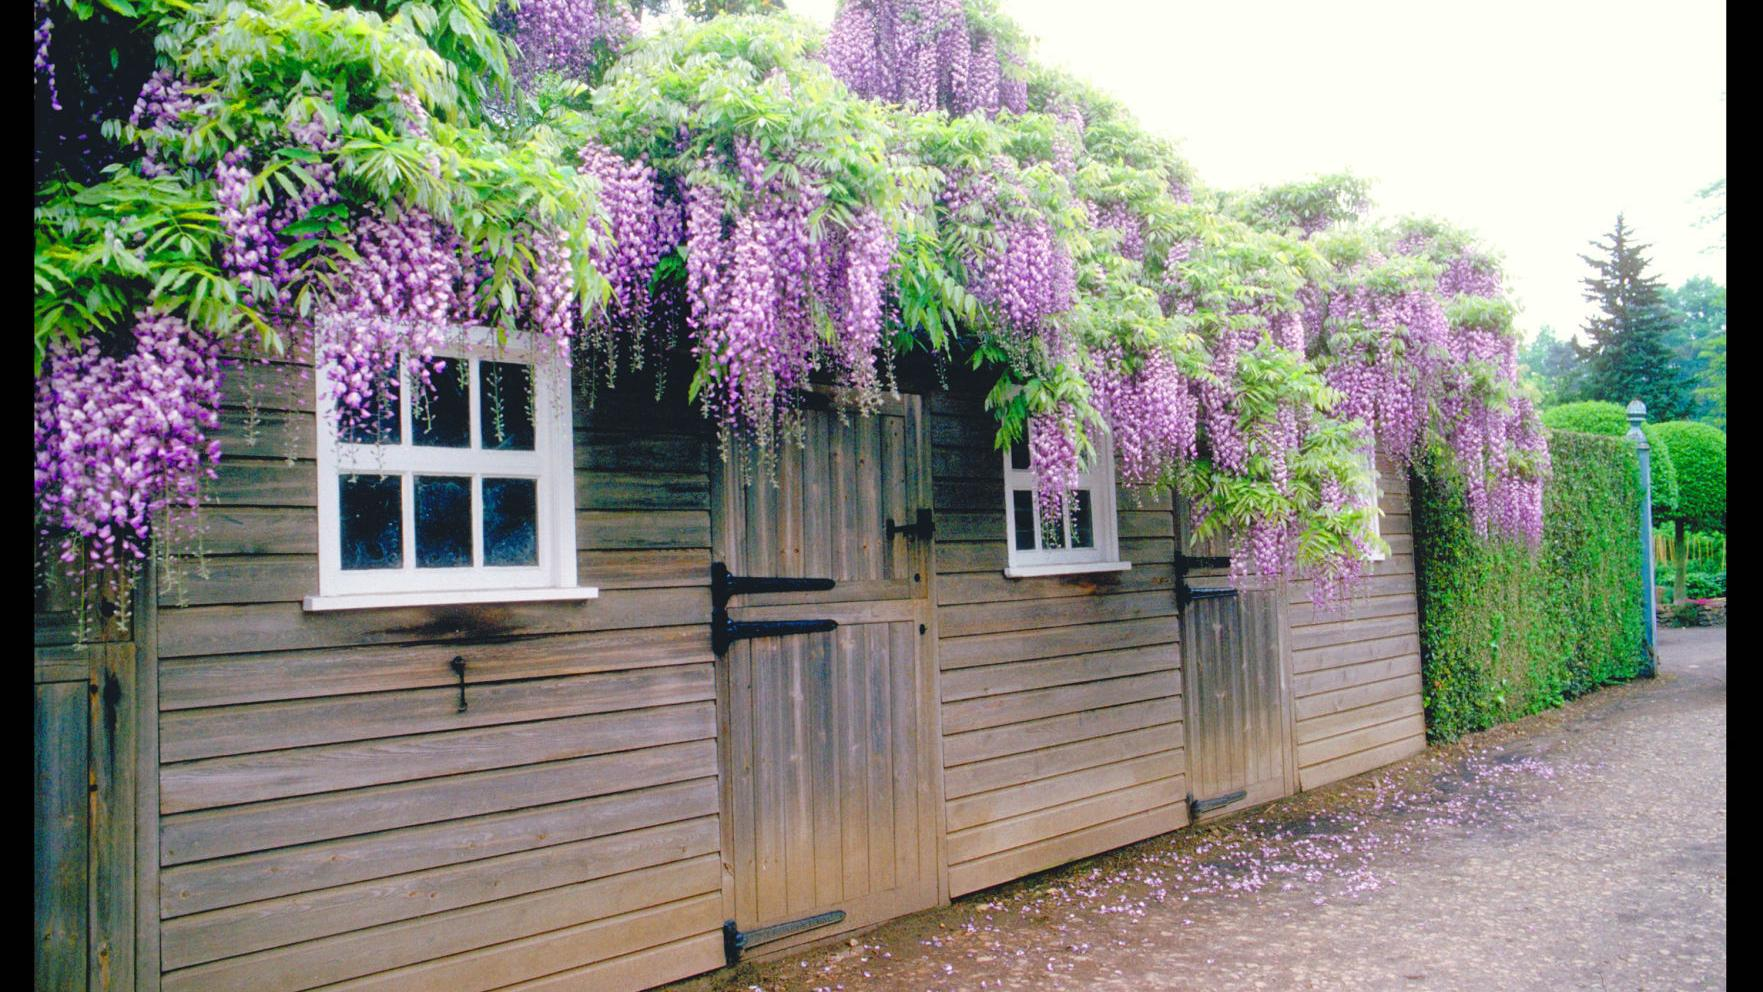 How to choose the right wisteria for your garden